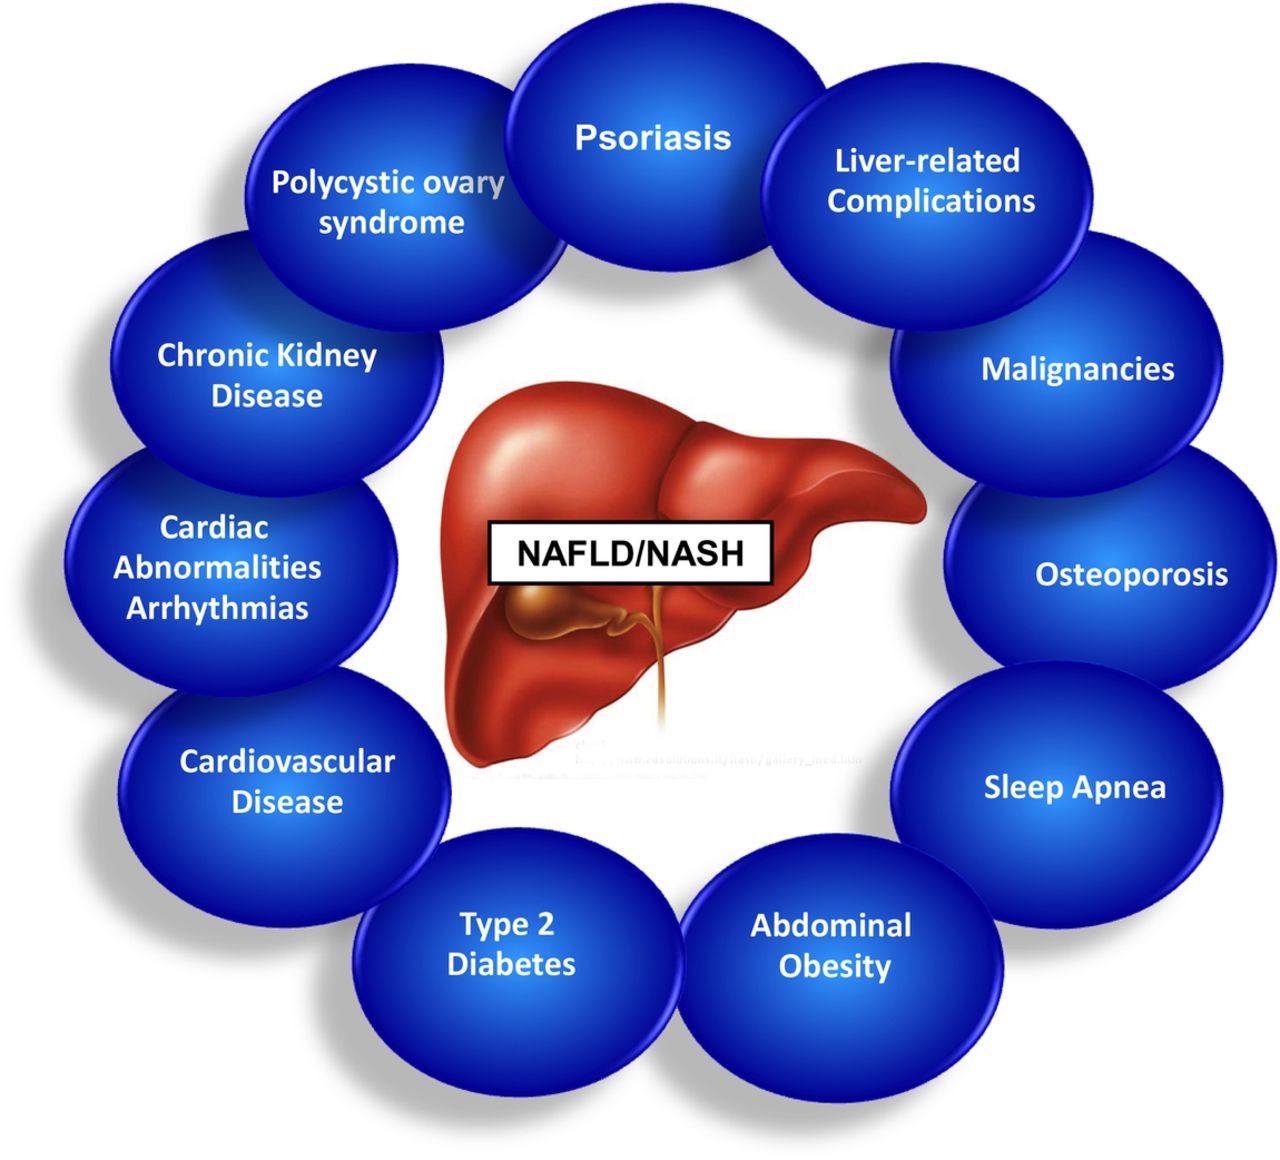 chronic liver disease and its risk factors Growing evidence suggests that nonalcoholic fatty liver disease is associated with an increased risk of cardiovascular disease beyond that conferred by established risk factors.